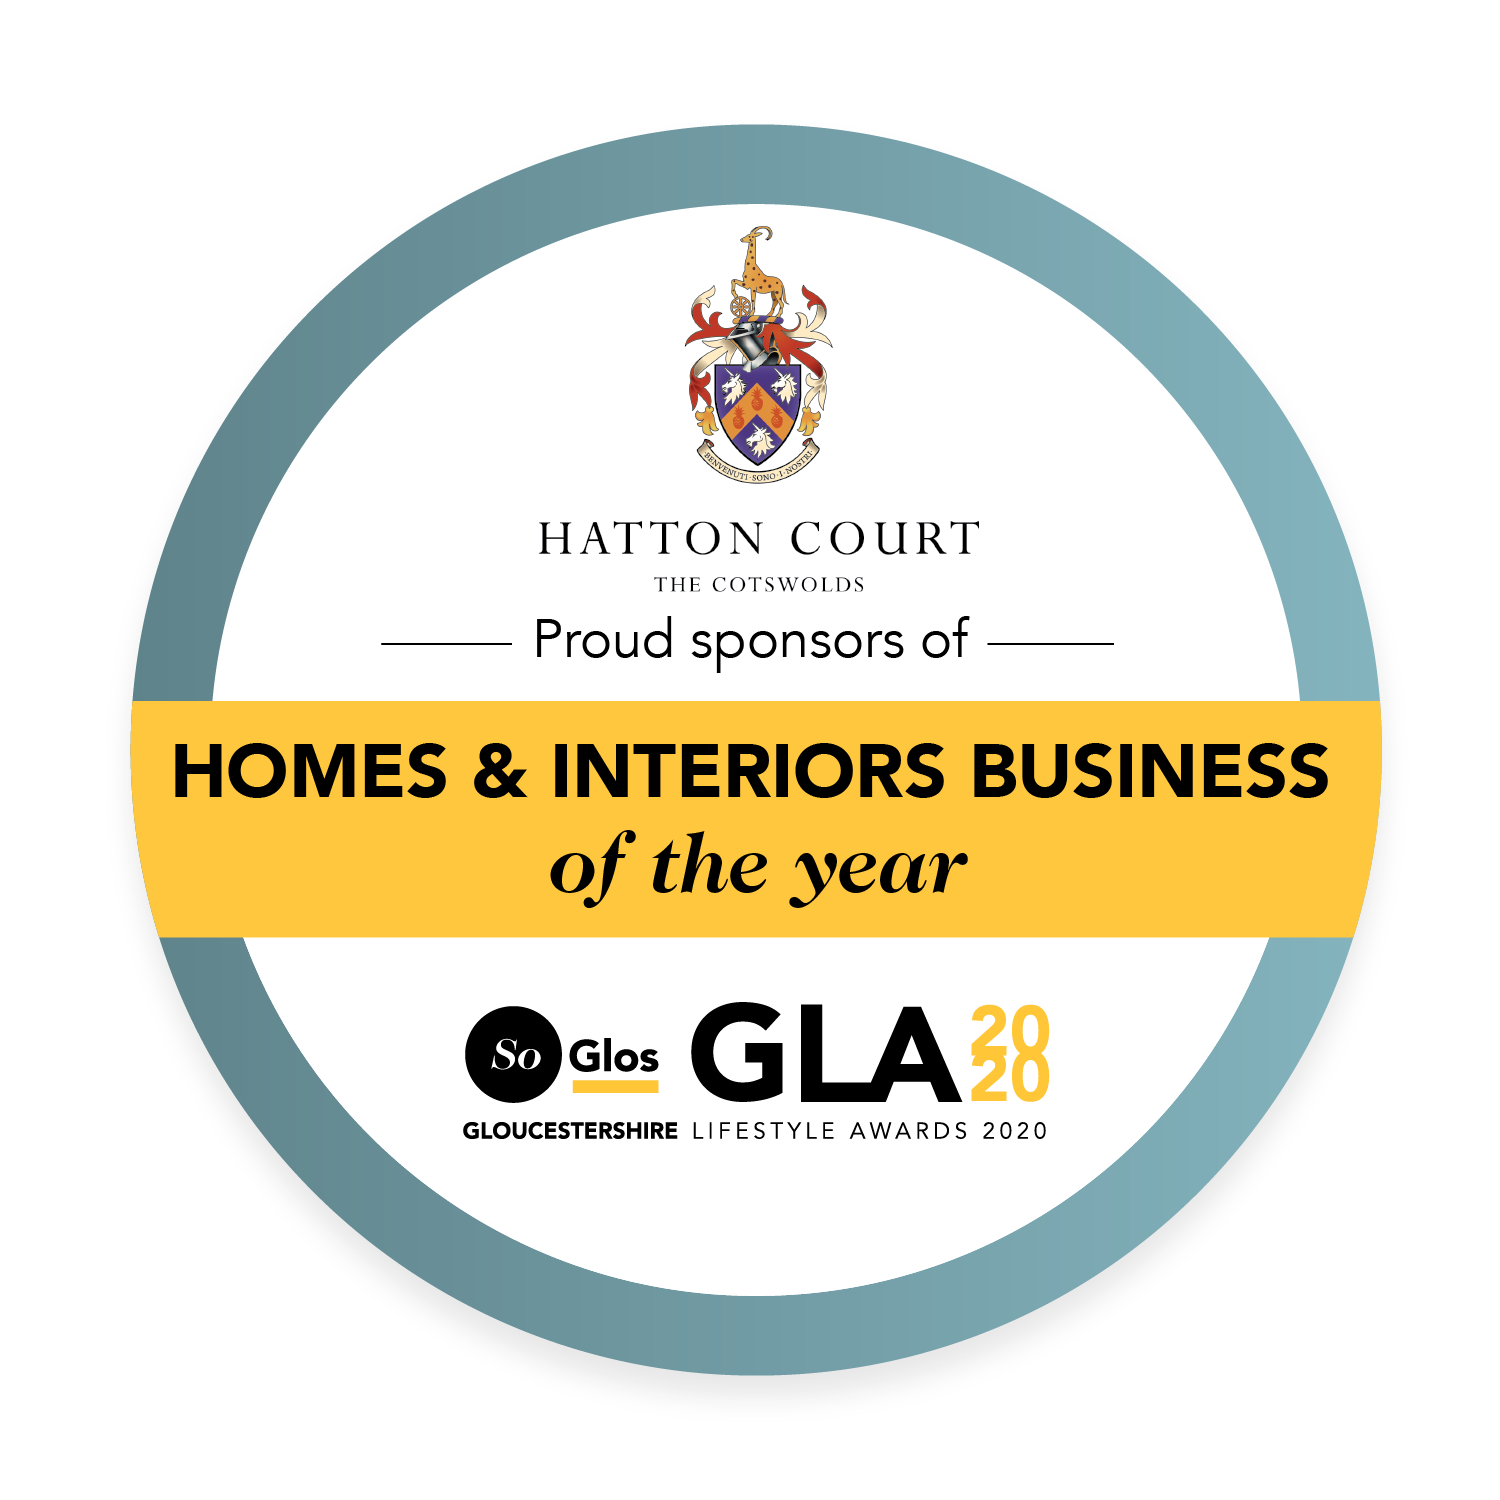 Homes & Interiors Business of the Year